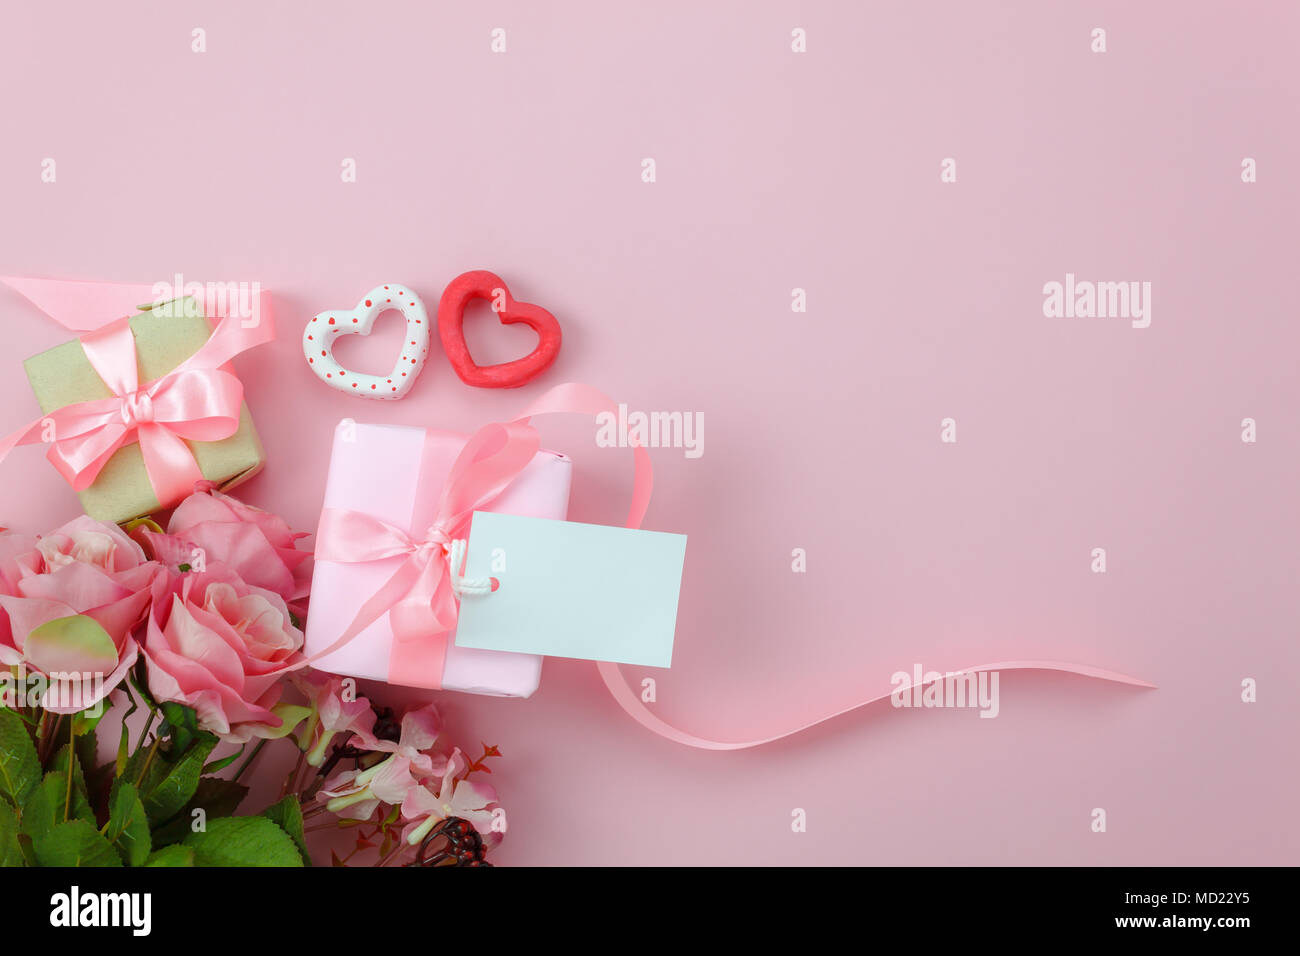 Top view aerial image of decorations Happy mothers day holiday background concept.Flat lay mom white greeting card on gift box with rose flower on mod - Stock Image